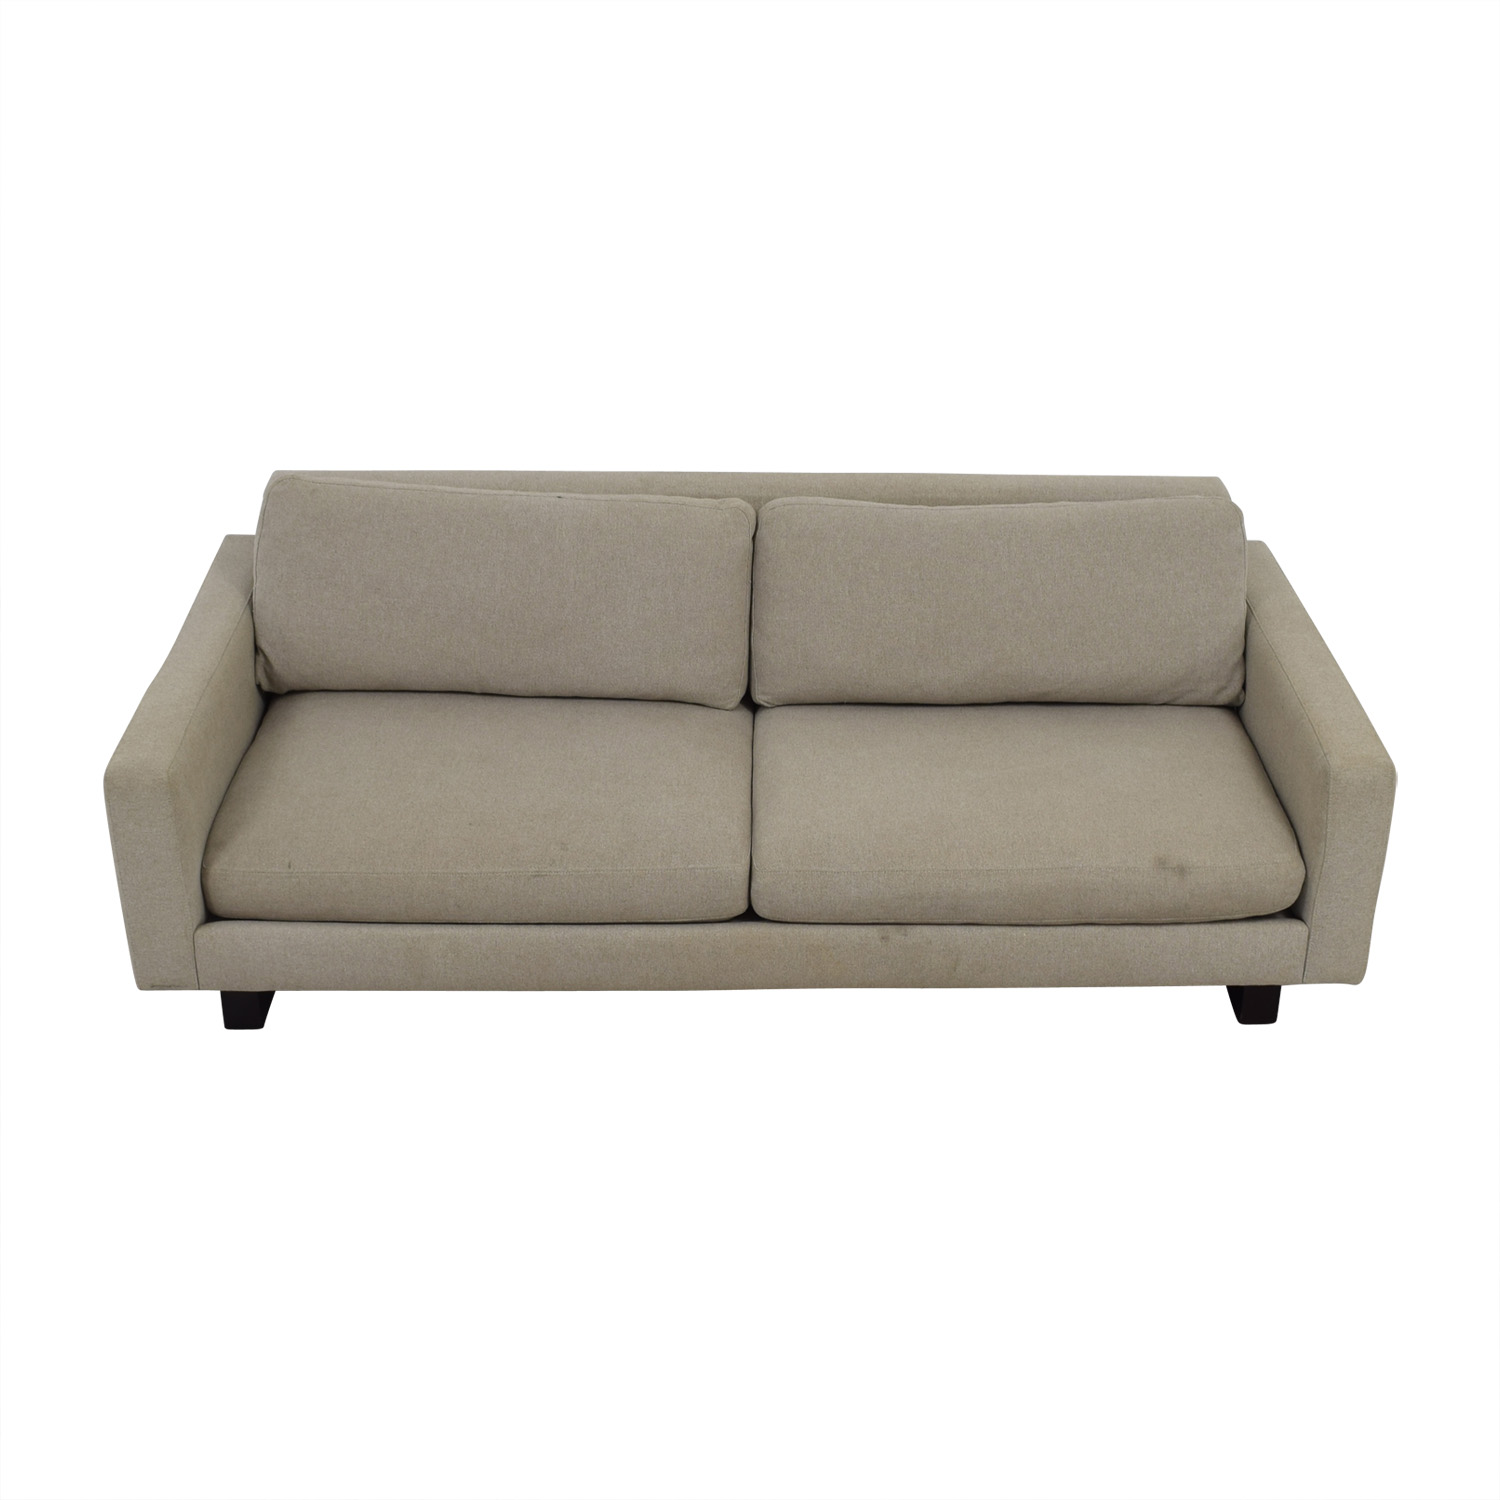 Room & Board Room & Board Beige Hess Two-Cushion Sofa price